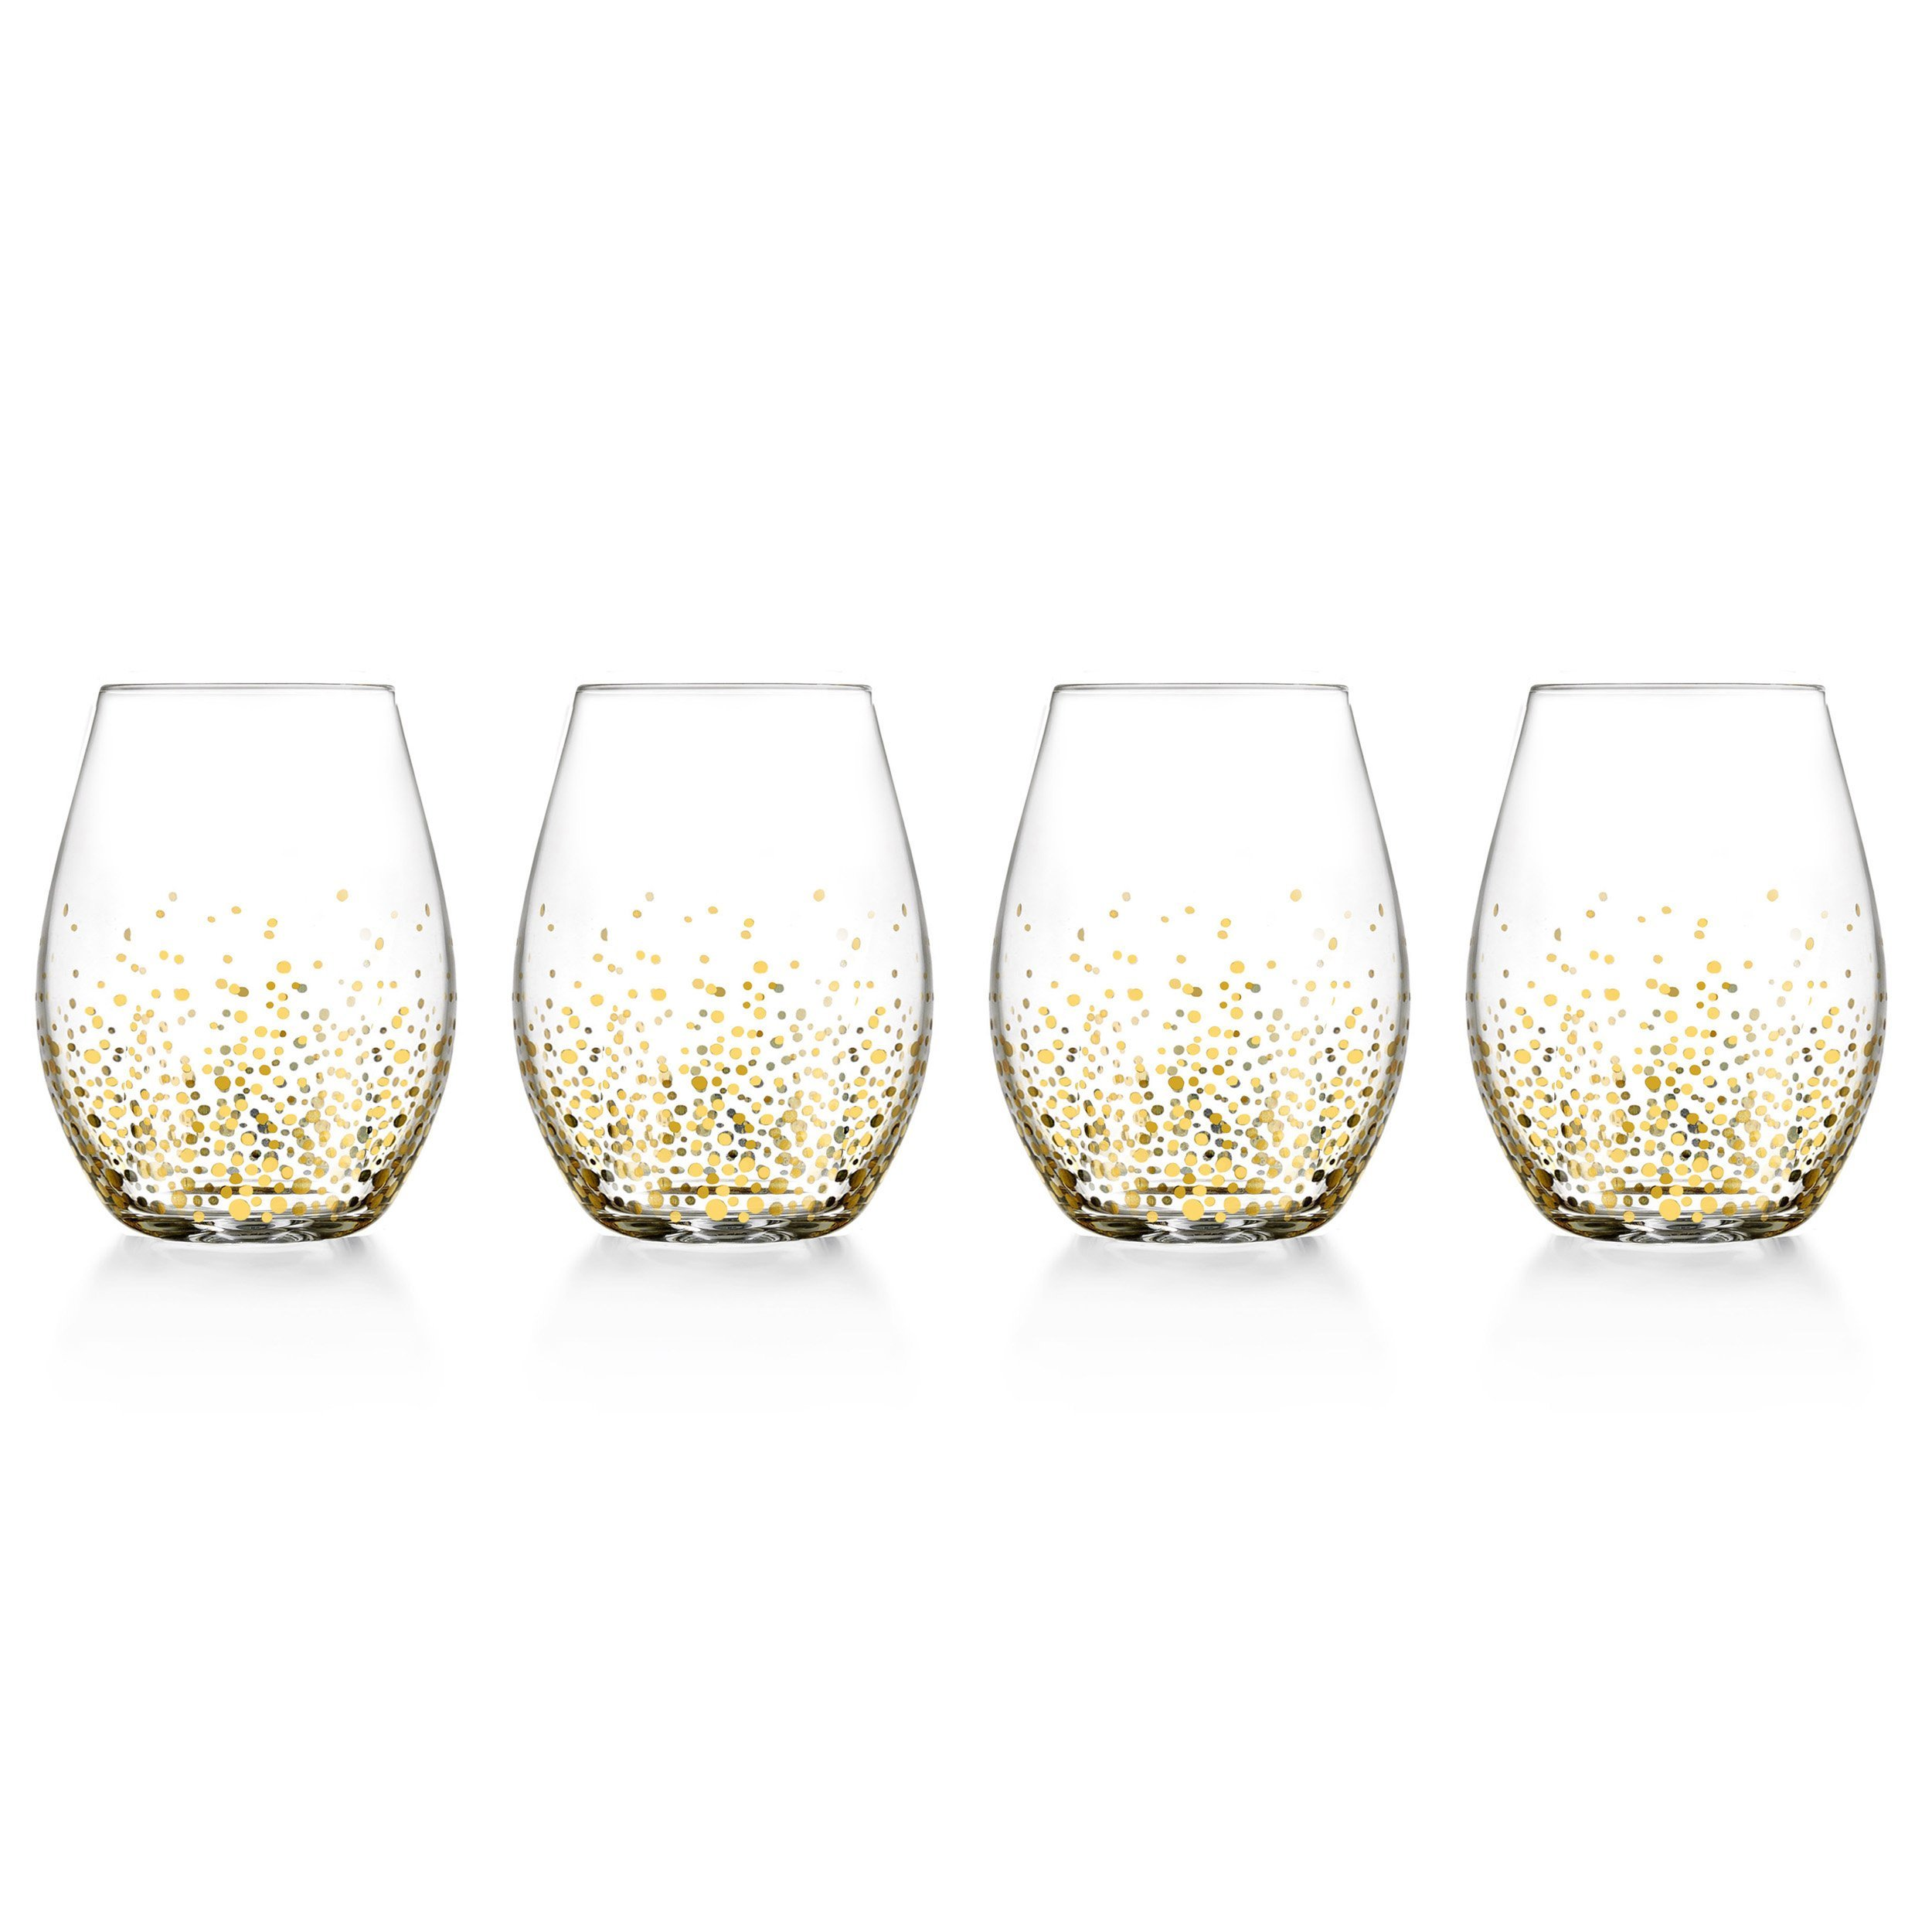 Fitz and Floyd Luster Stemless Glasses (Set of 4), Gold